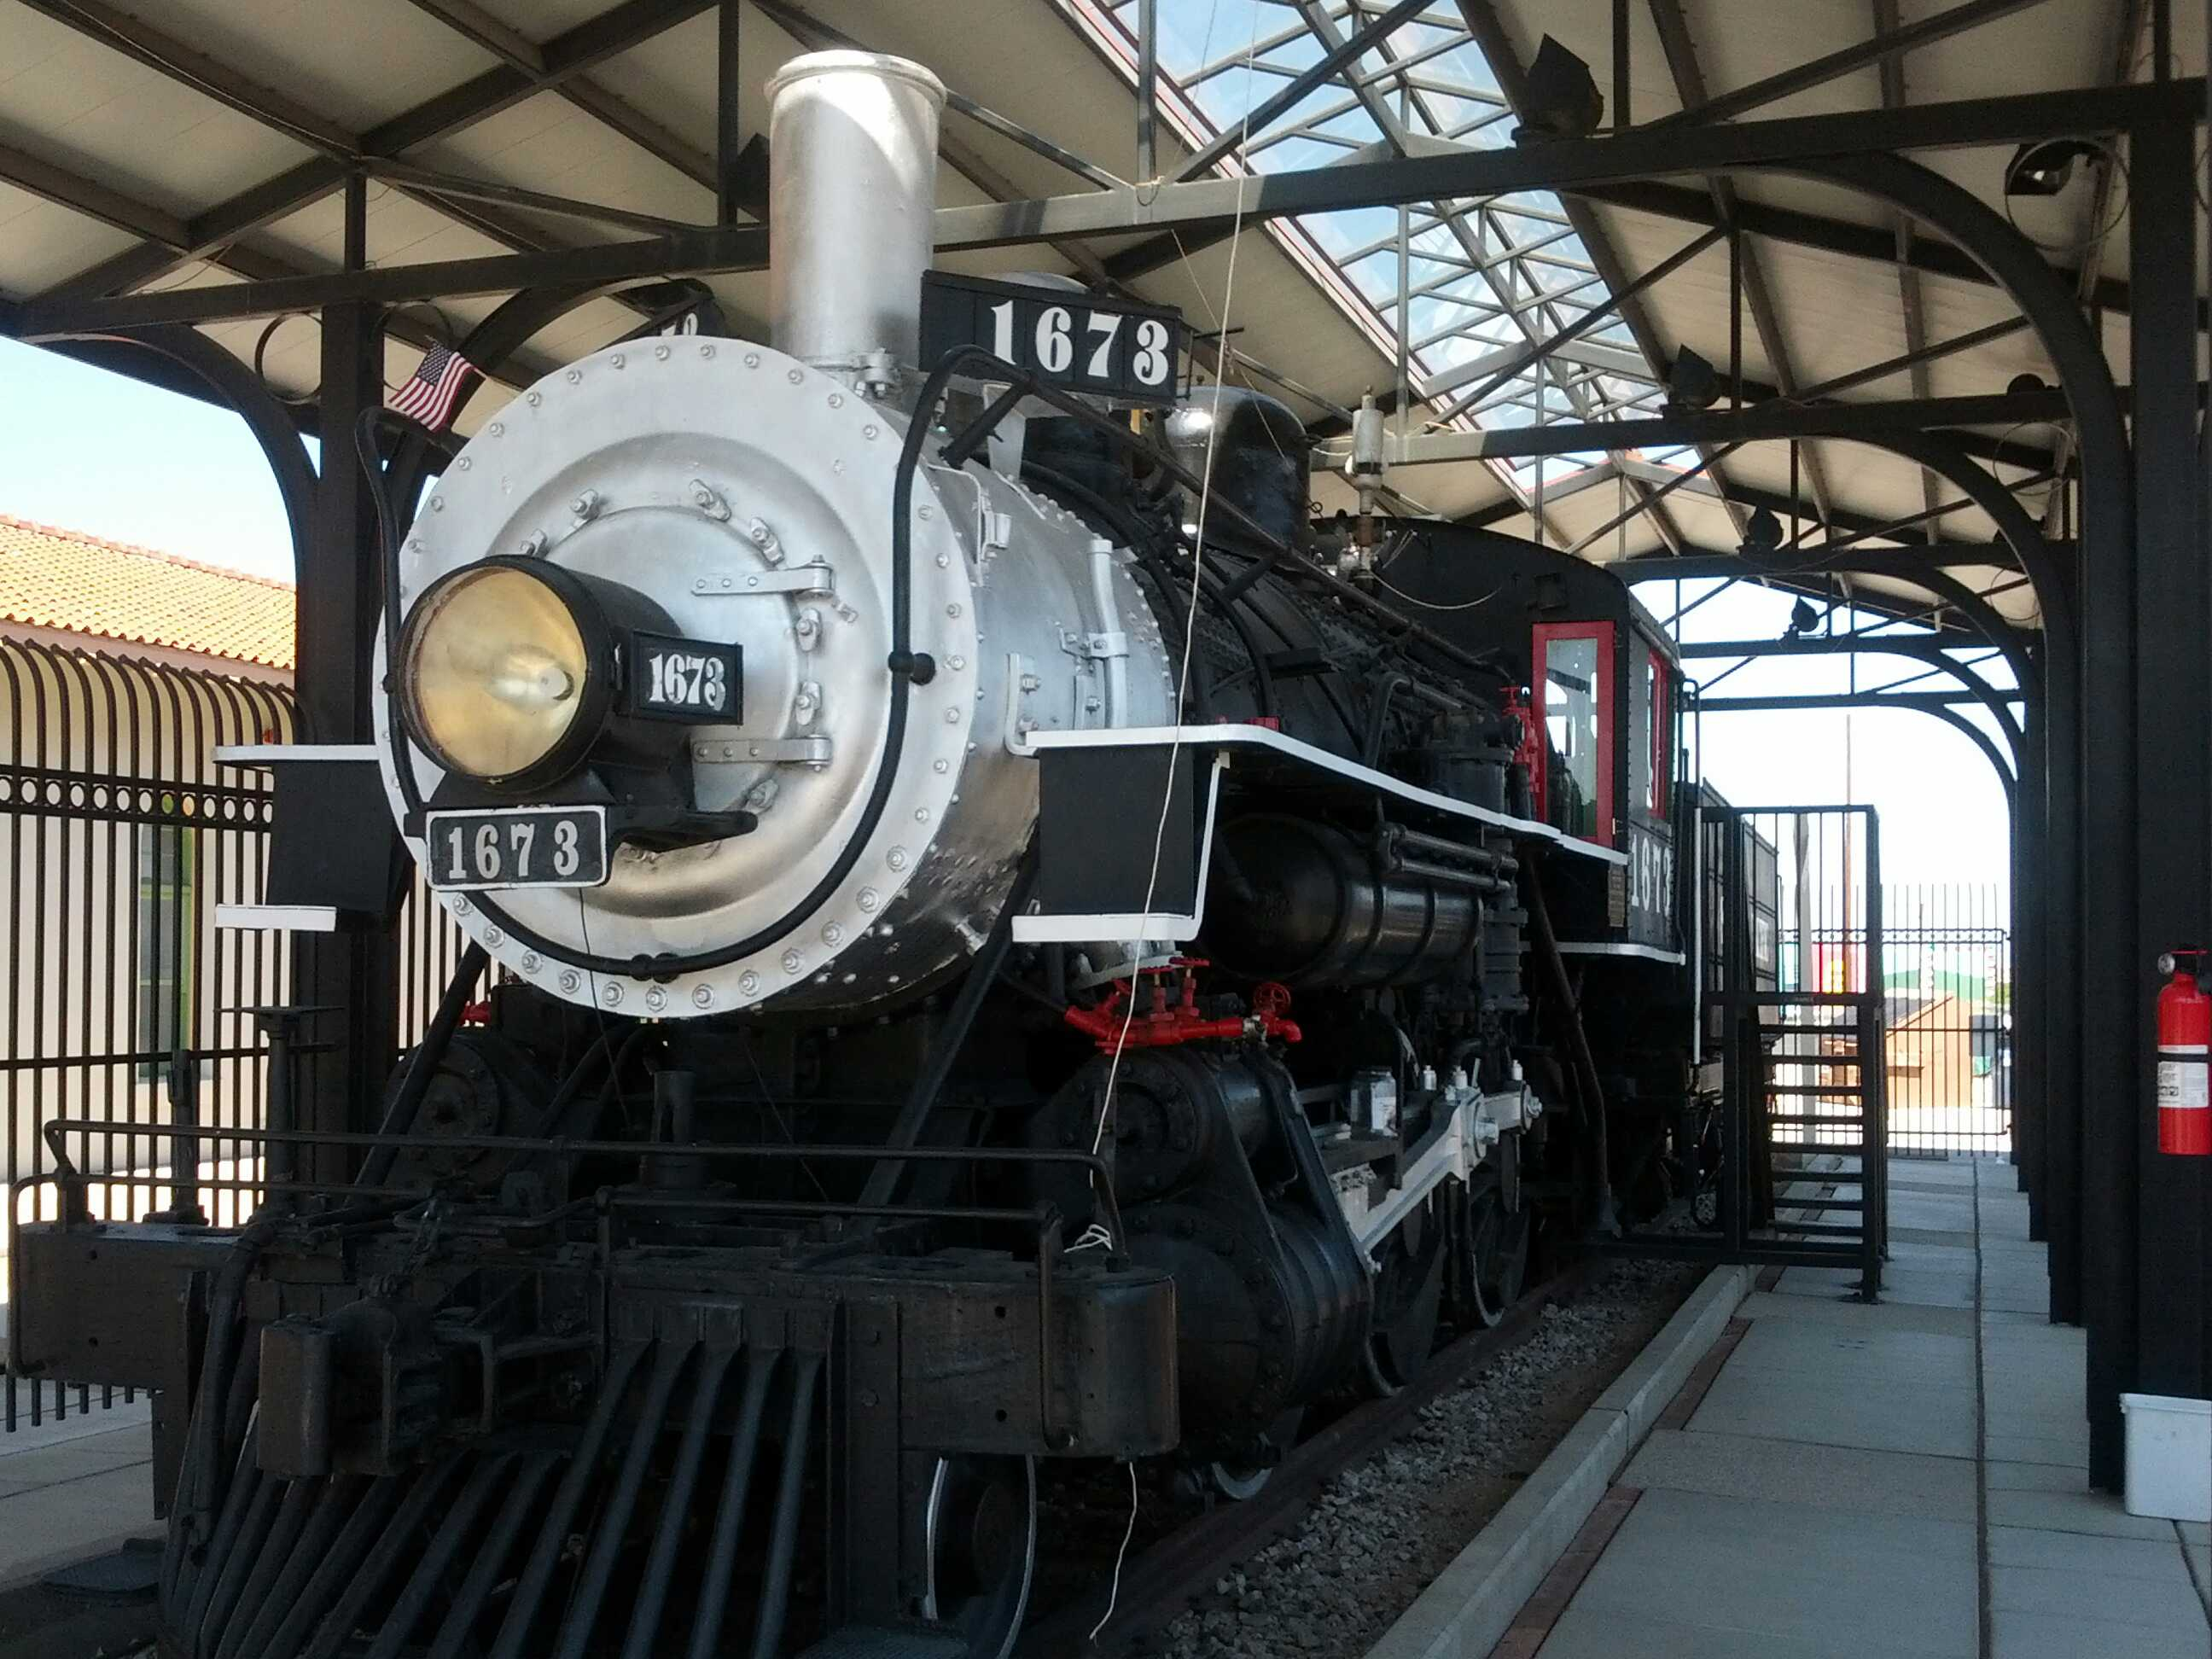 File:Southern Pacific Railroad Locomotive No- 1673 (taken on 25Aug2012  10hrs6mins28secs).